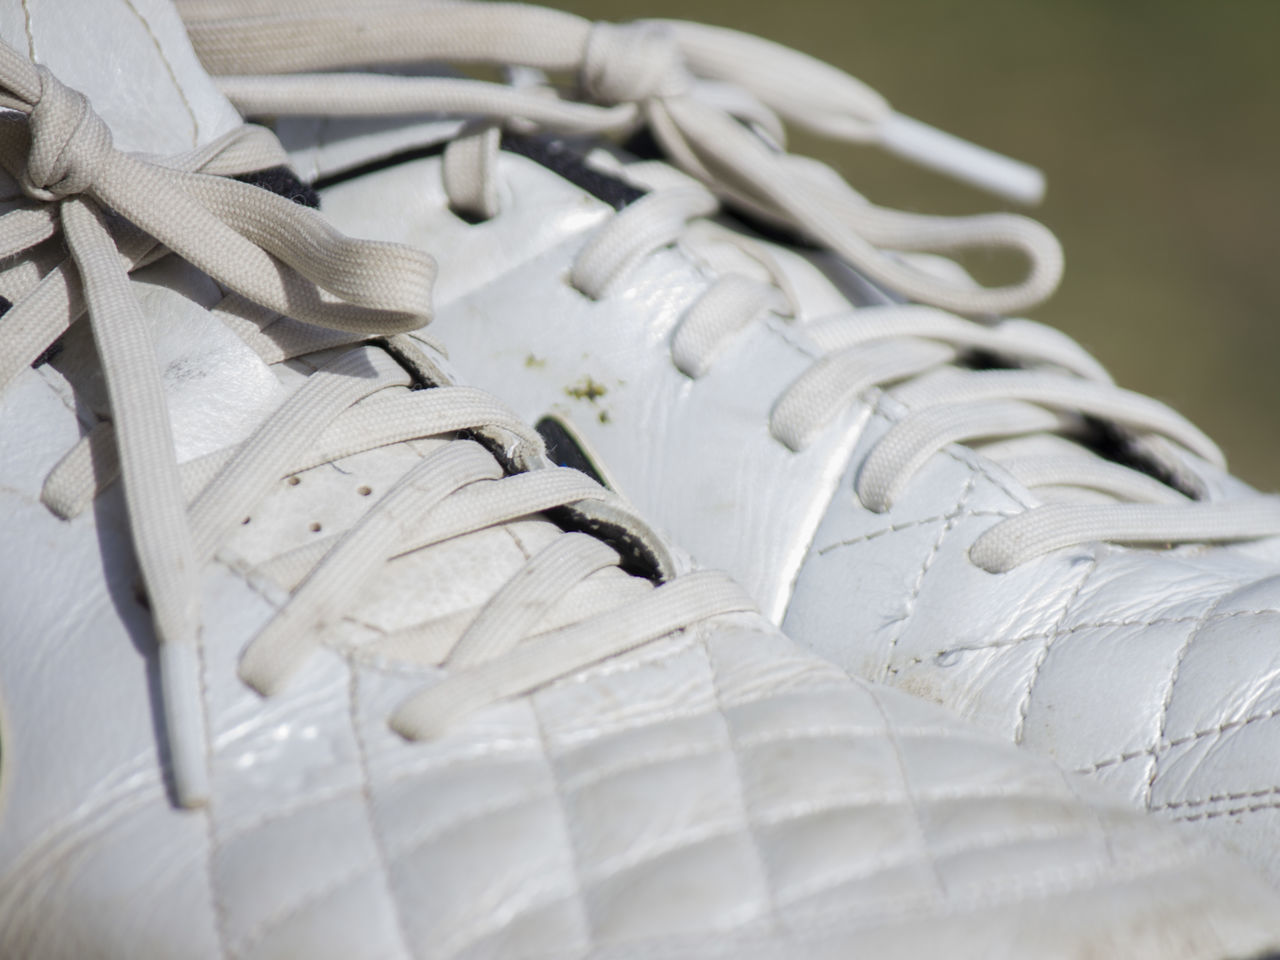 Chaussures de Foot Blanco Close-up Cordon Deporte Focus On Foreground Futbol Shoes White